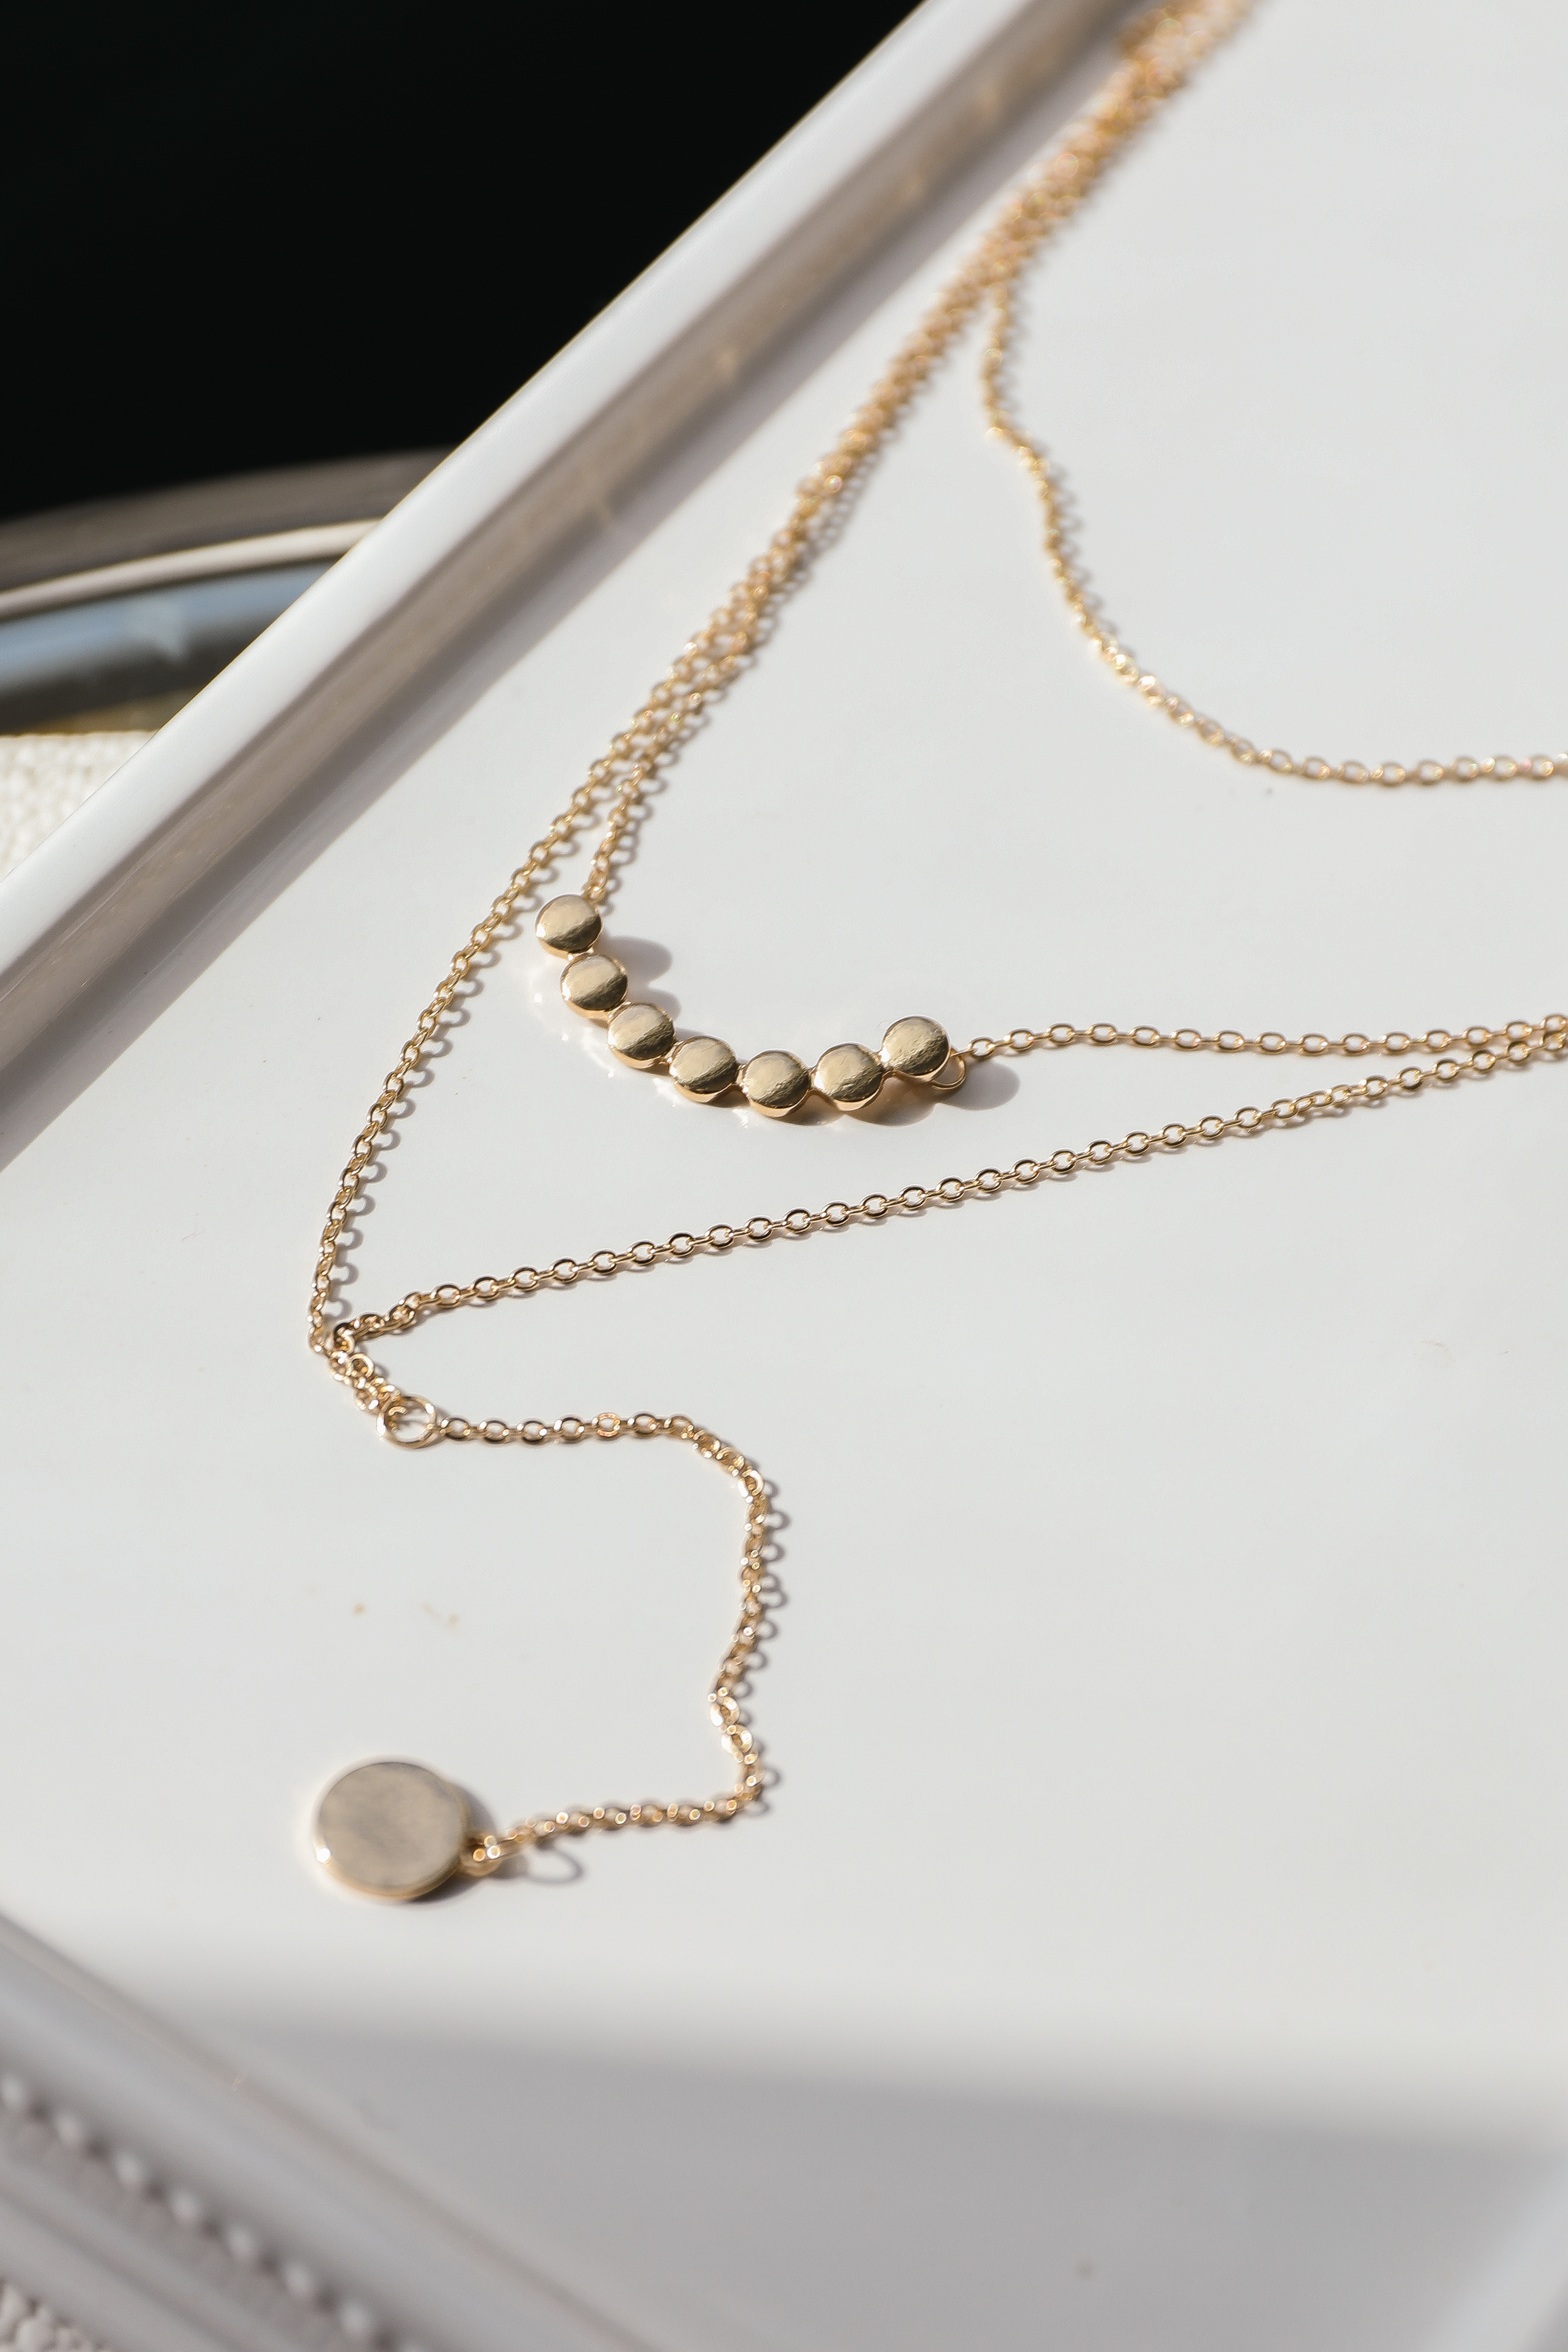 Antique Gold Layered Necklace with Coin Shaped Pendants